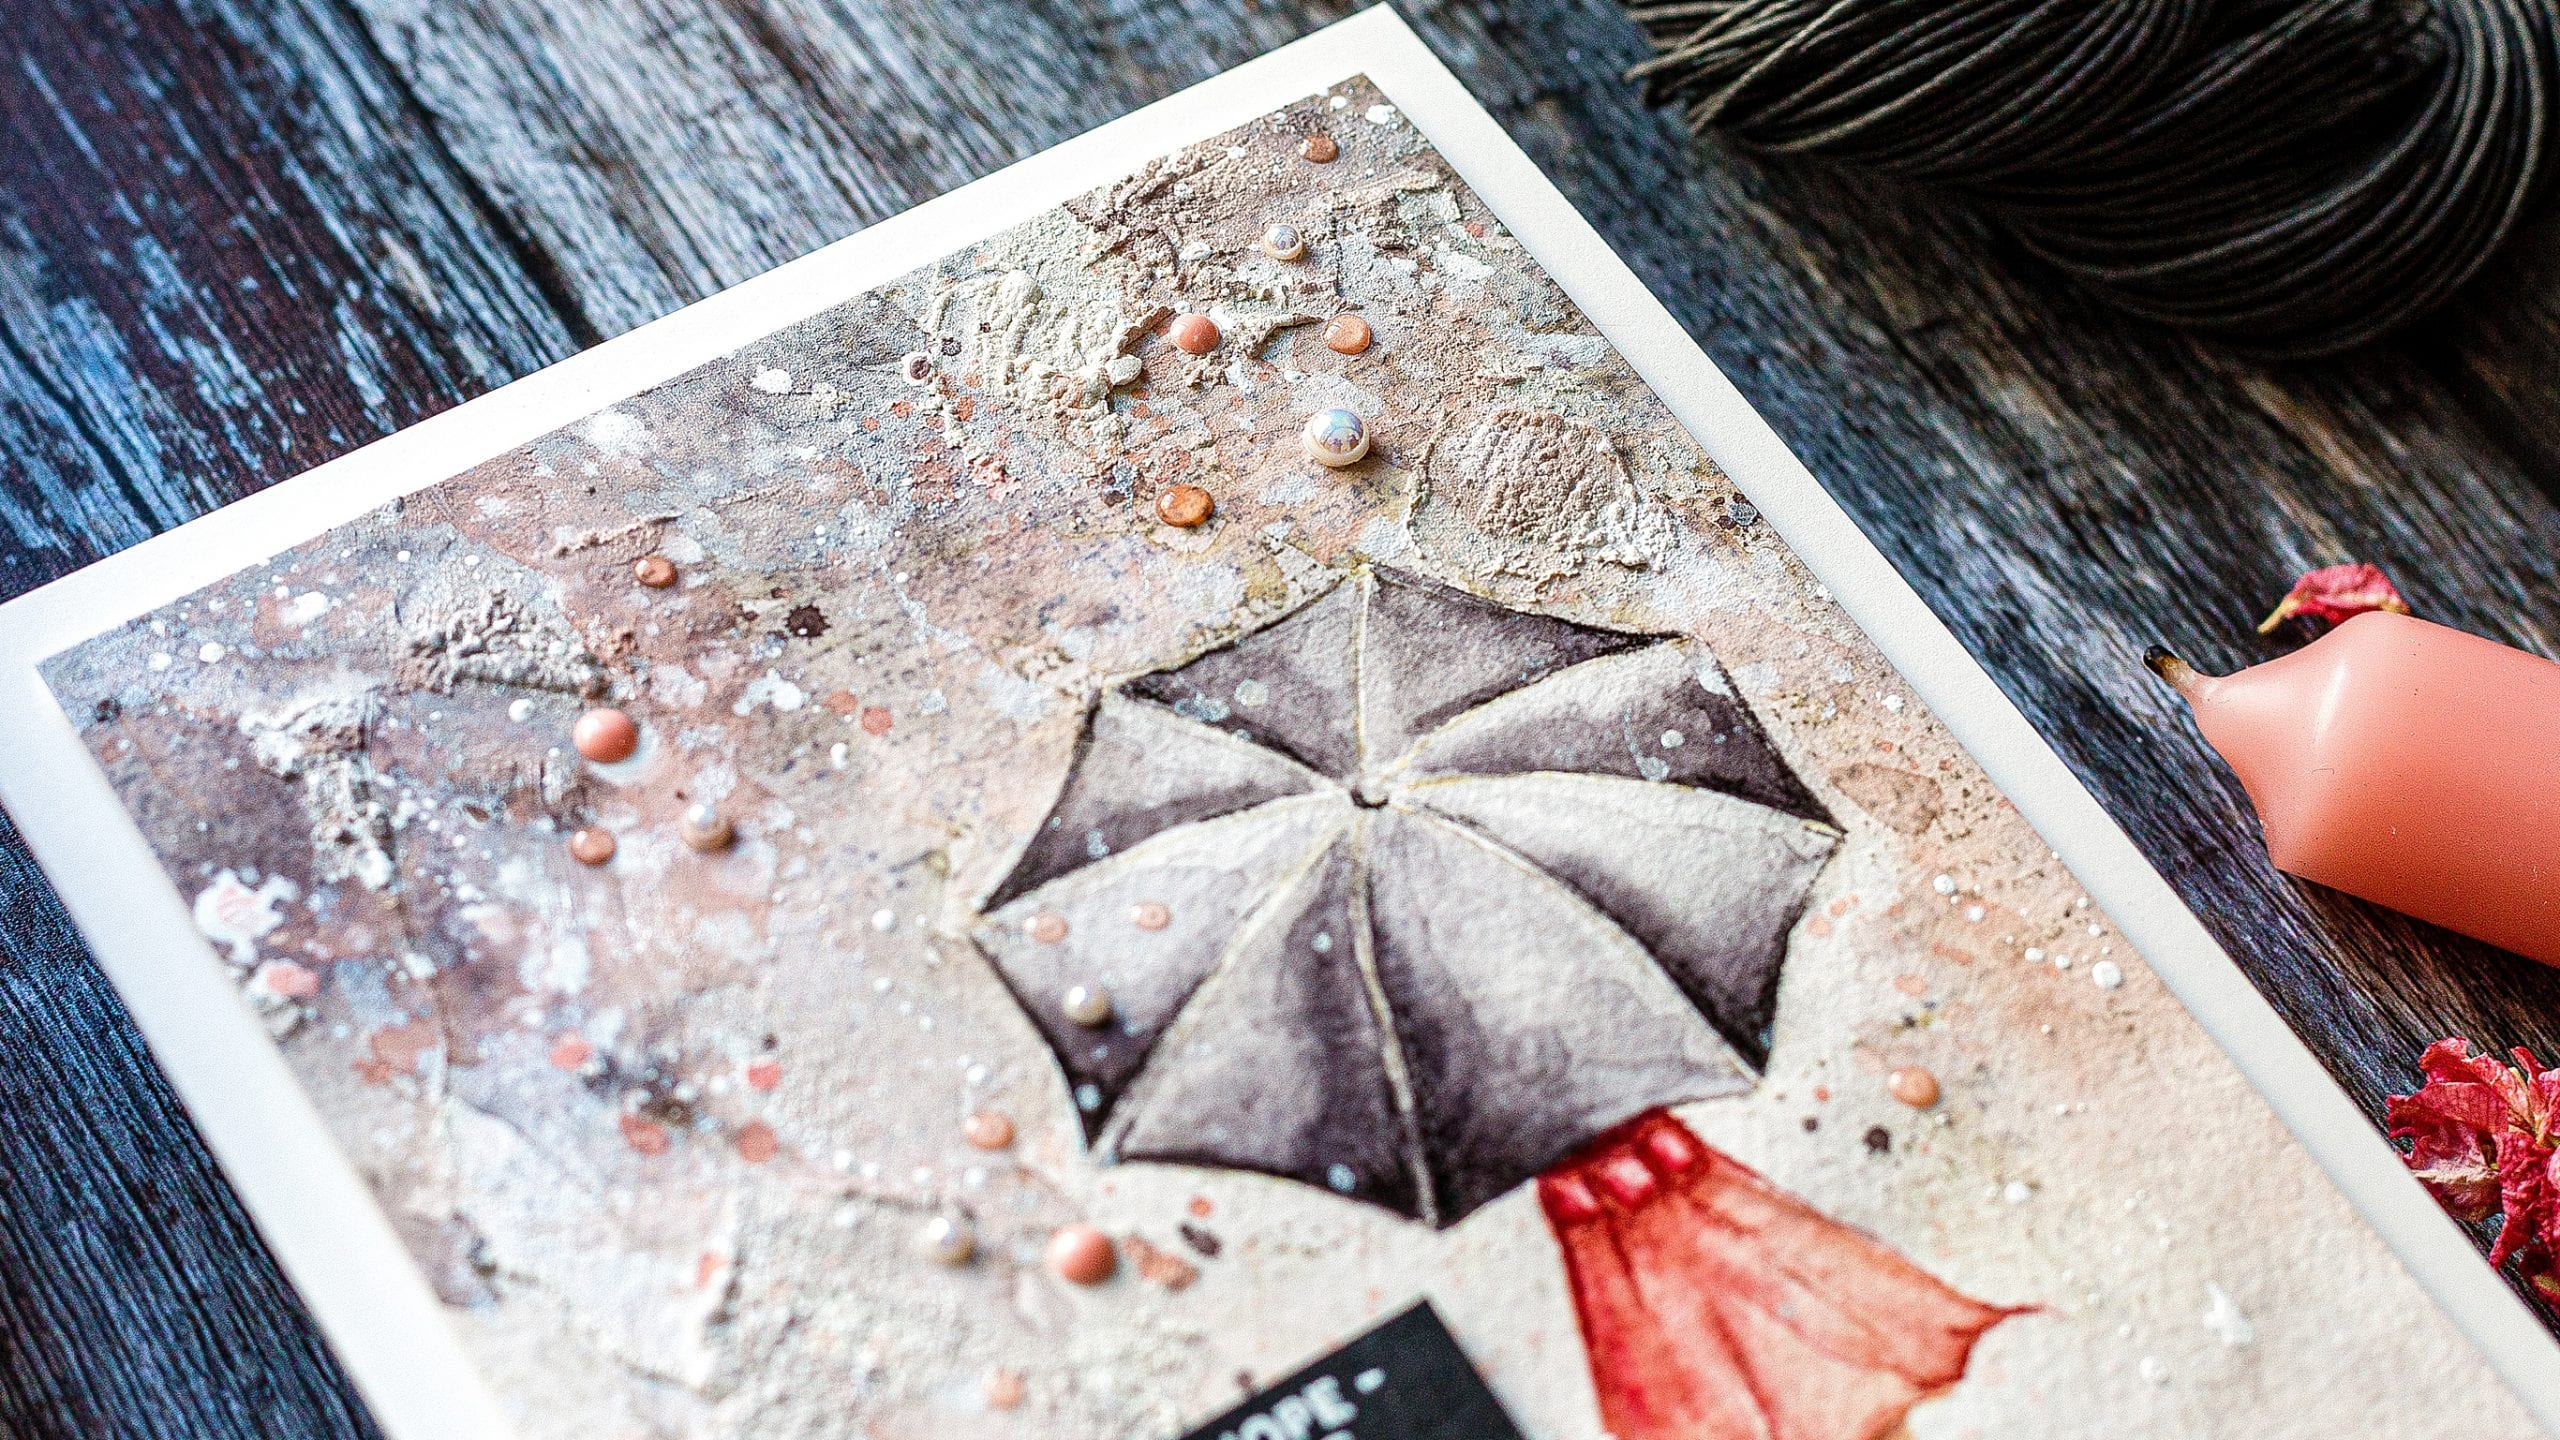 Video - texture + watercolour background handmade card by Debby Hughes using supplies from Simon Says Stamp #watercolor #homemade